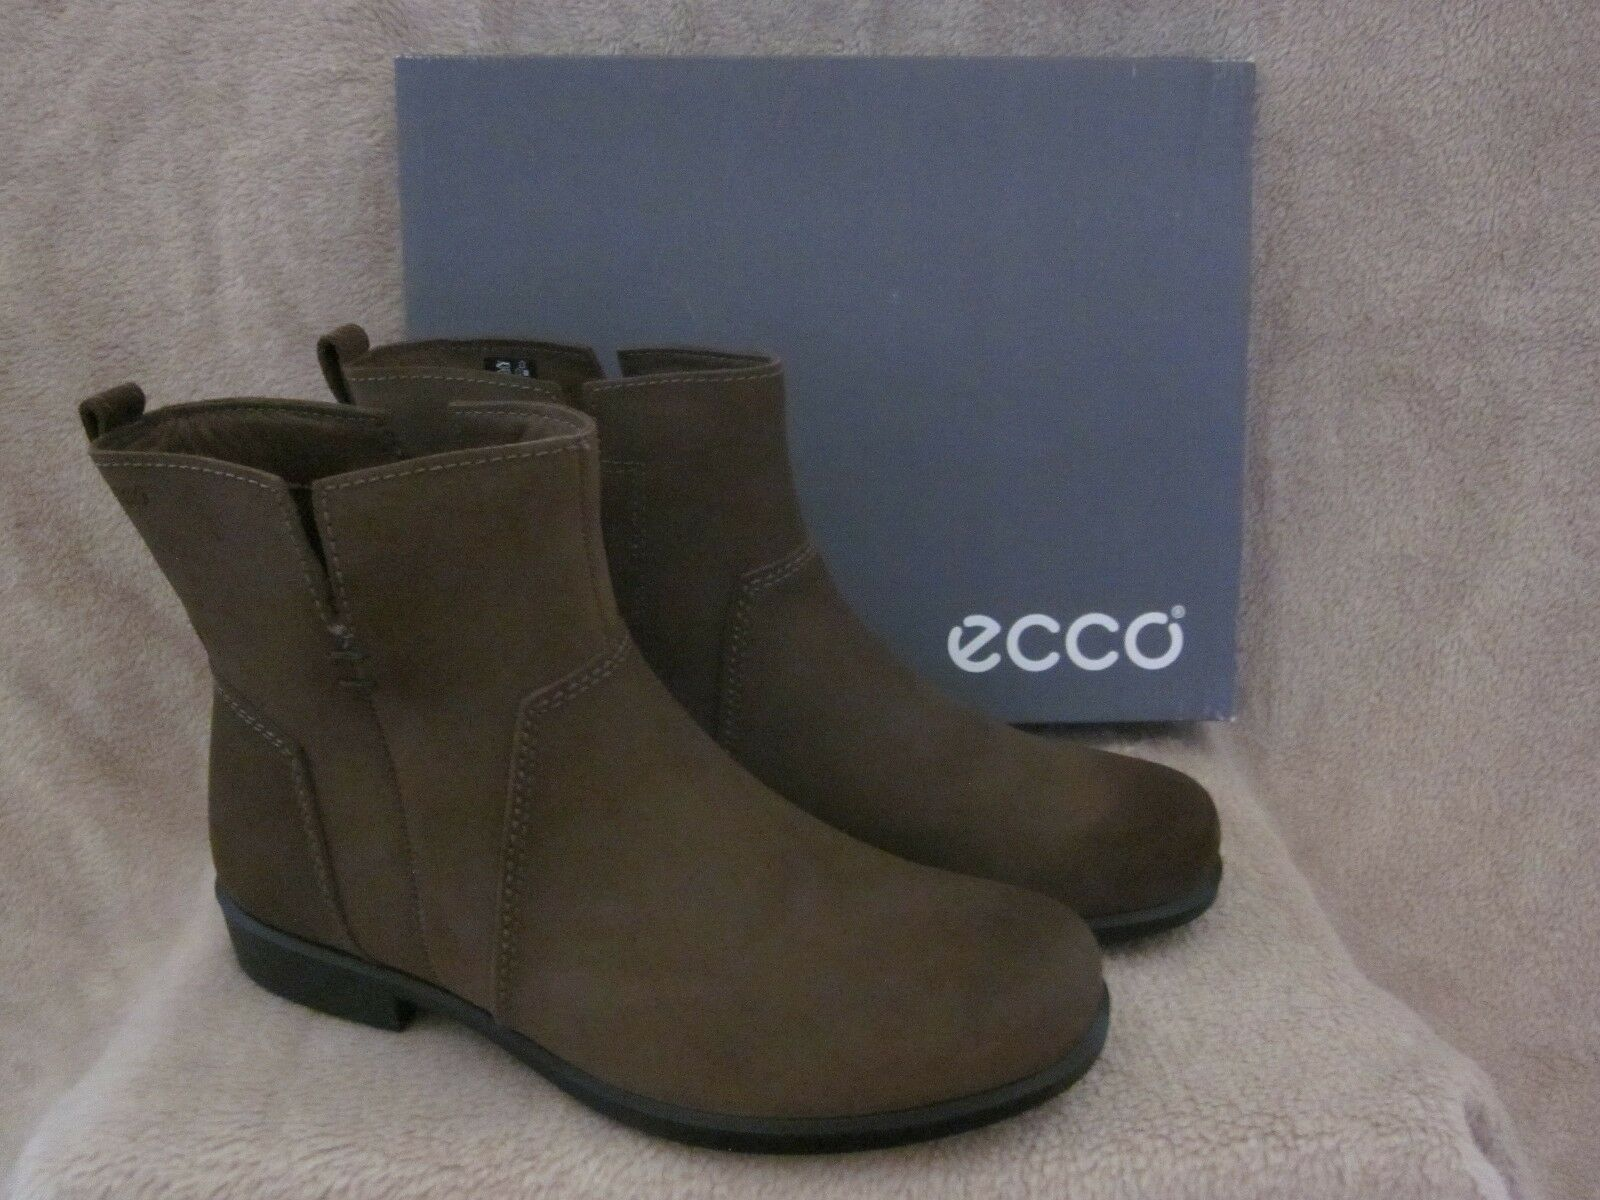 ECCO Touch 25 B Mid Cut Suede Leather Ankle Boots Shoes US 9 - 9.5 M EUR 40 NWB